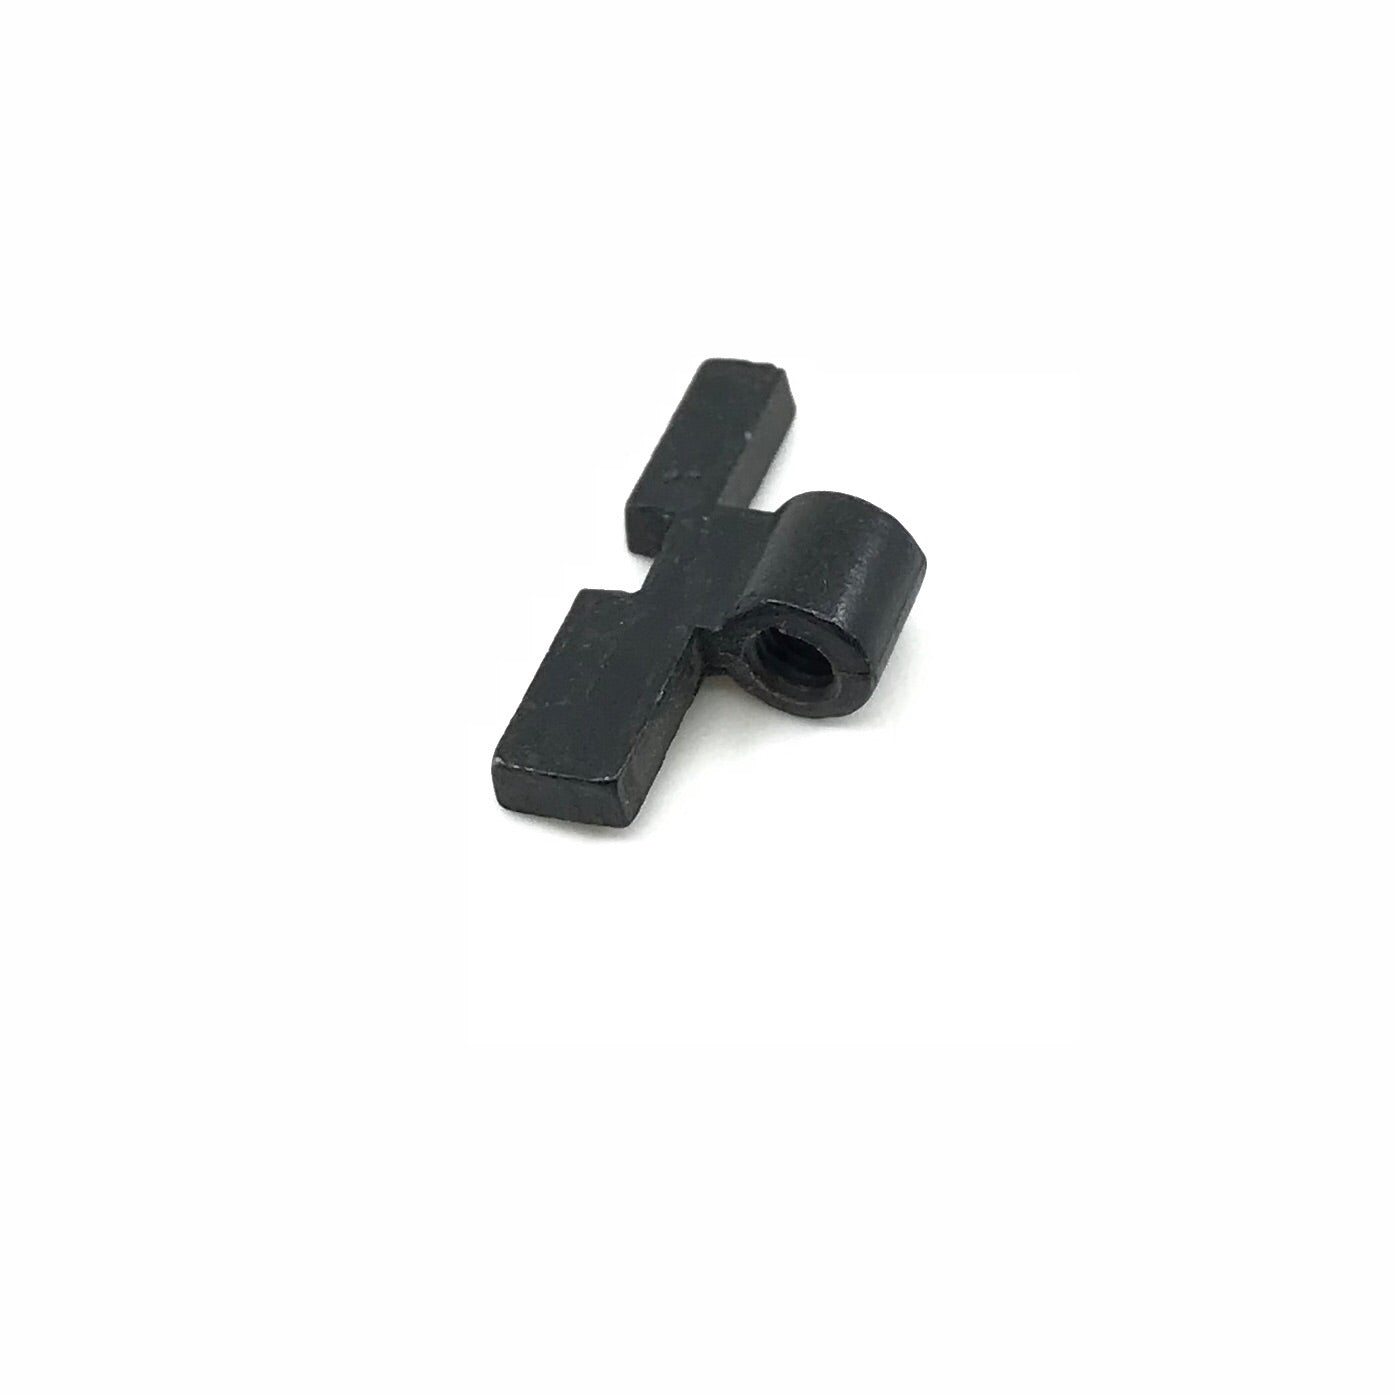 Rossi 500 Rear Blade Sight,Gunsmith's Parts- Canada Brass